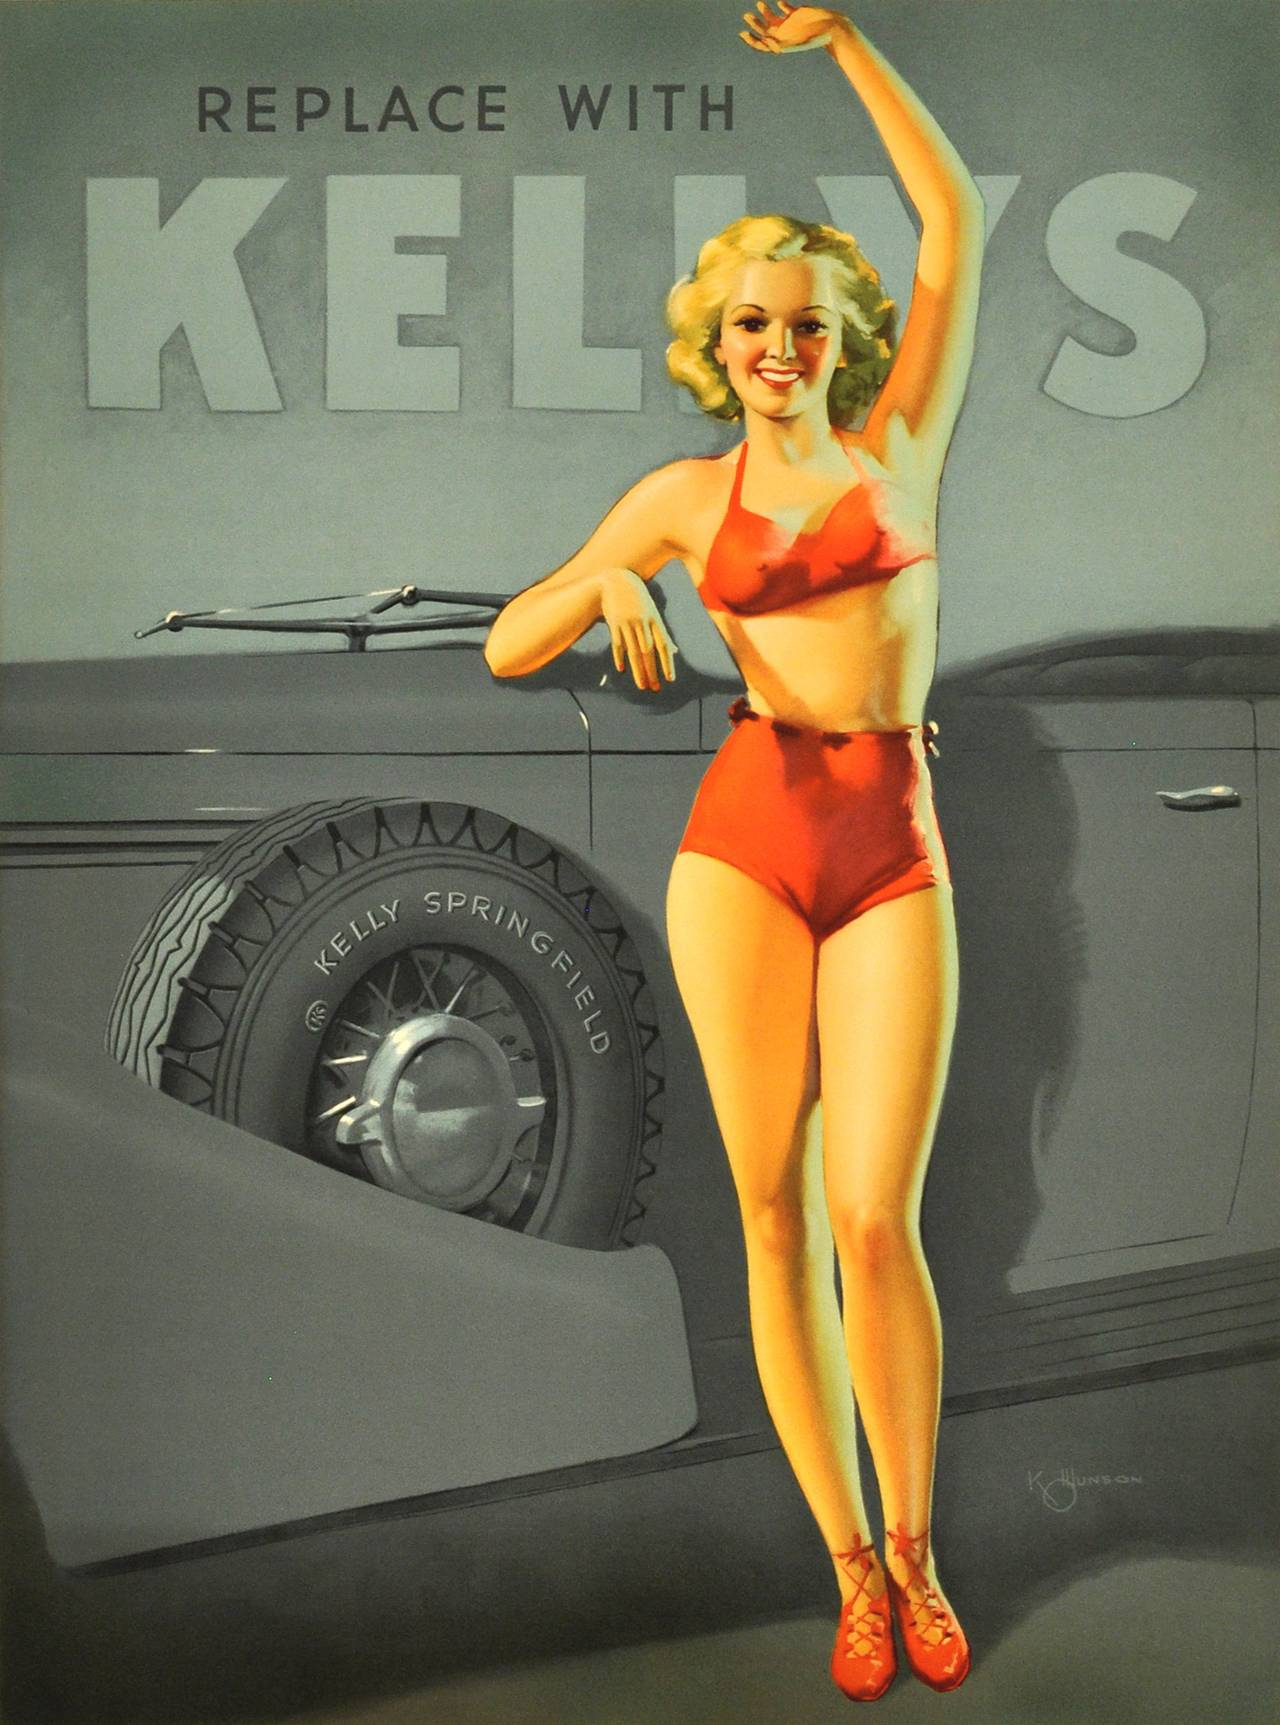 original 1930s art deco pin up style advertising poster